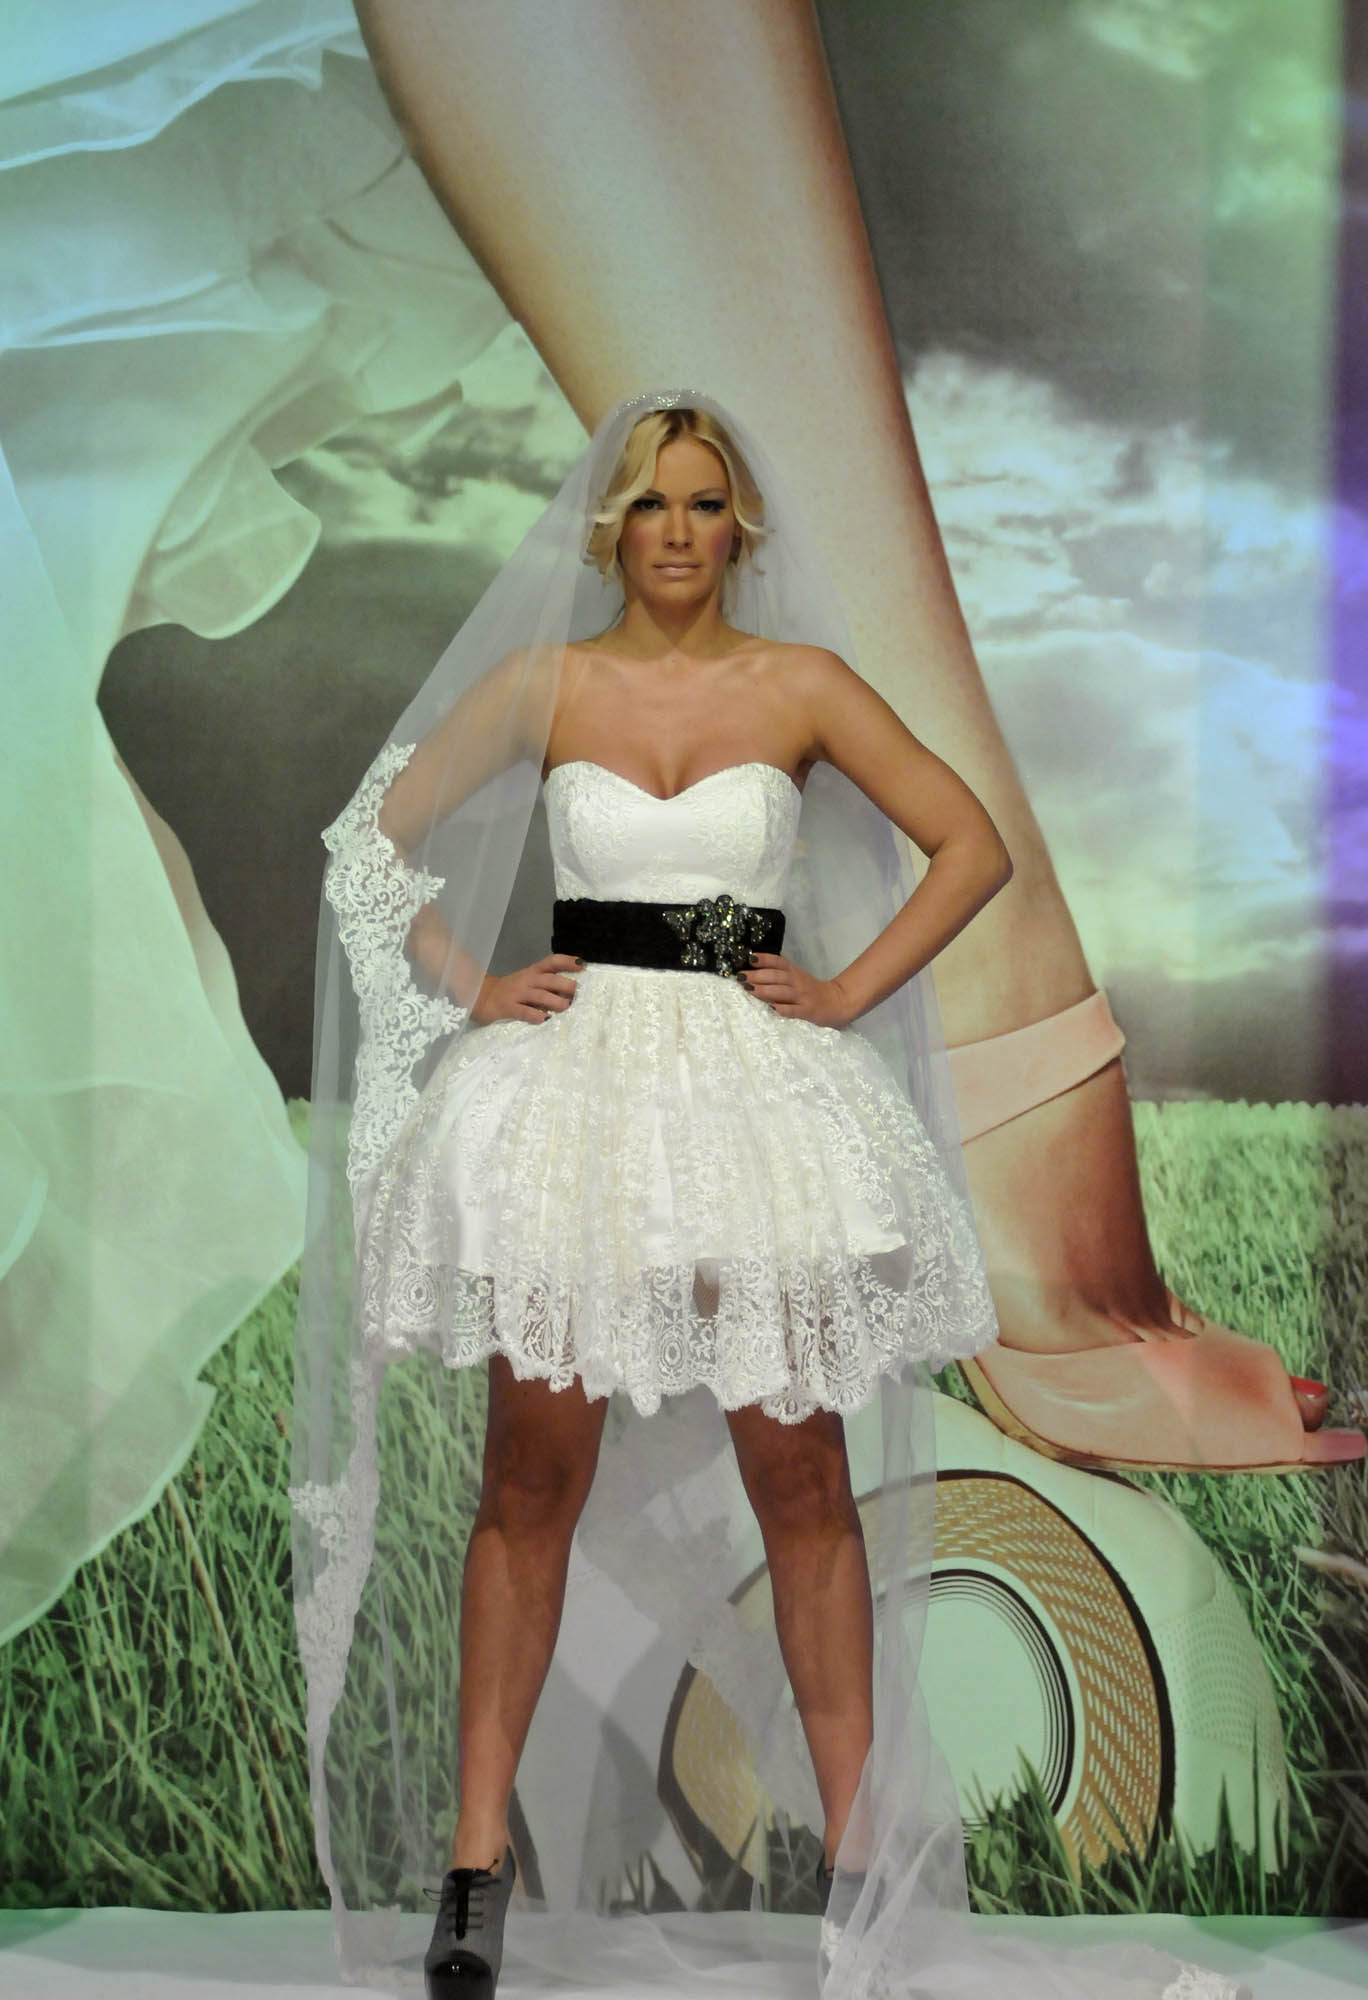 Wedding Show 2011 Natasa Bekvalac